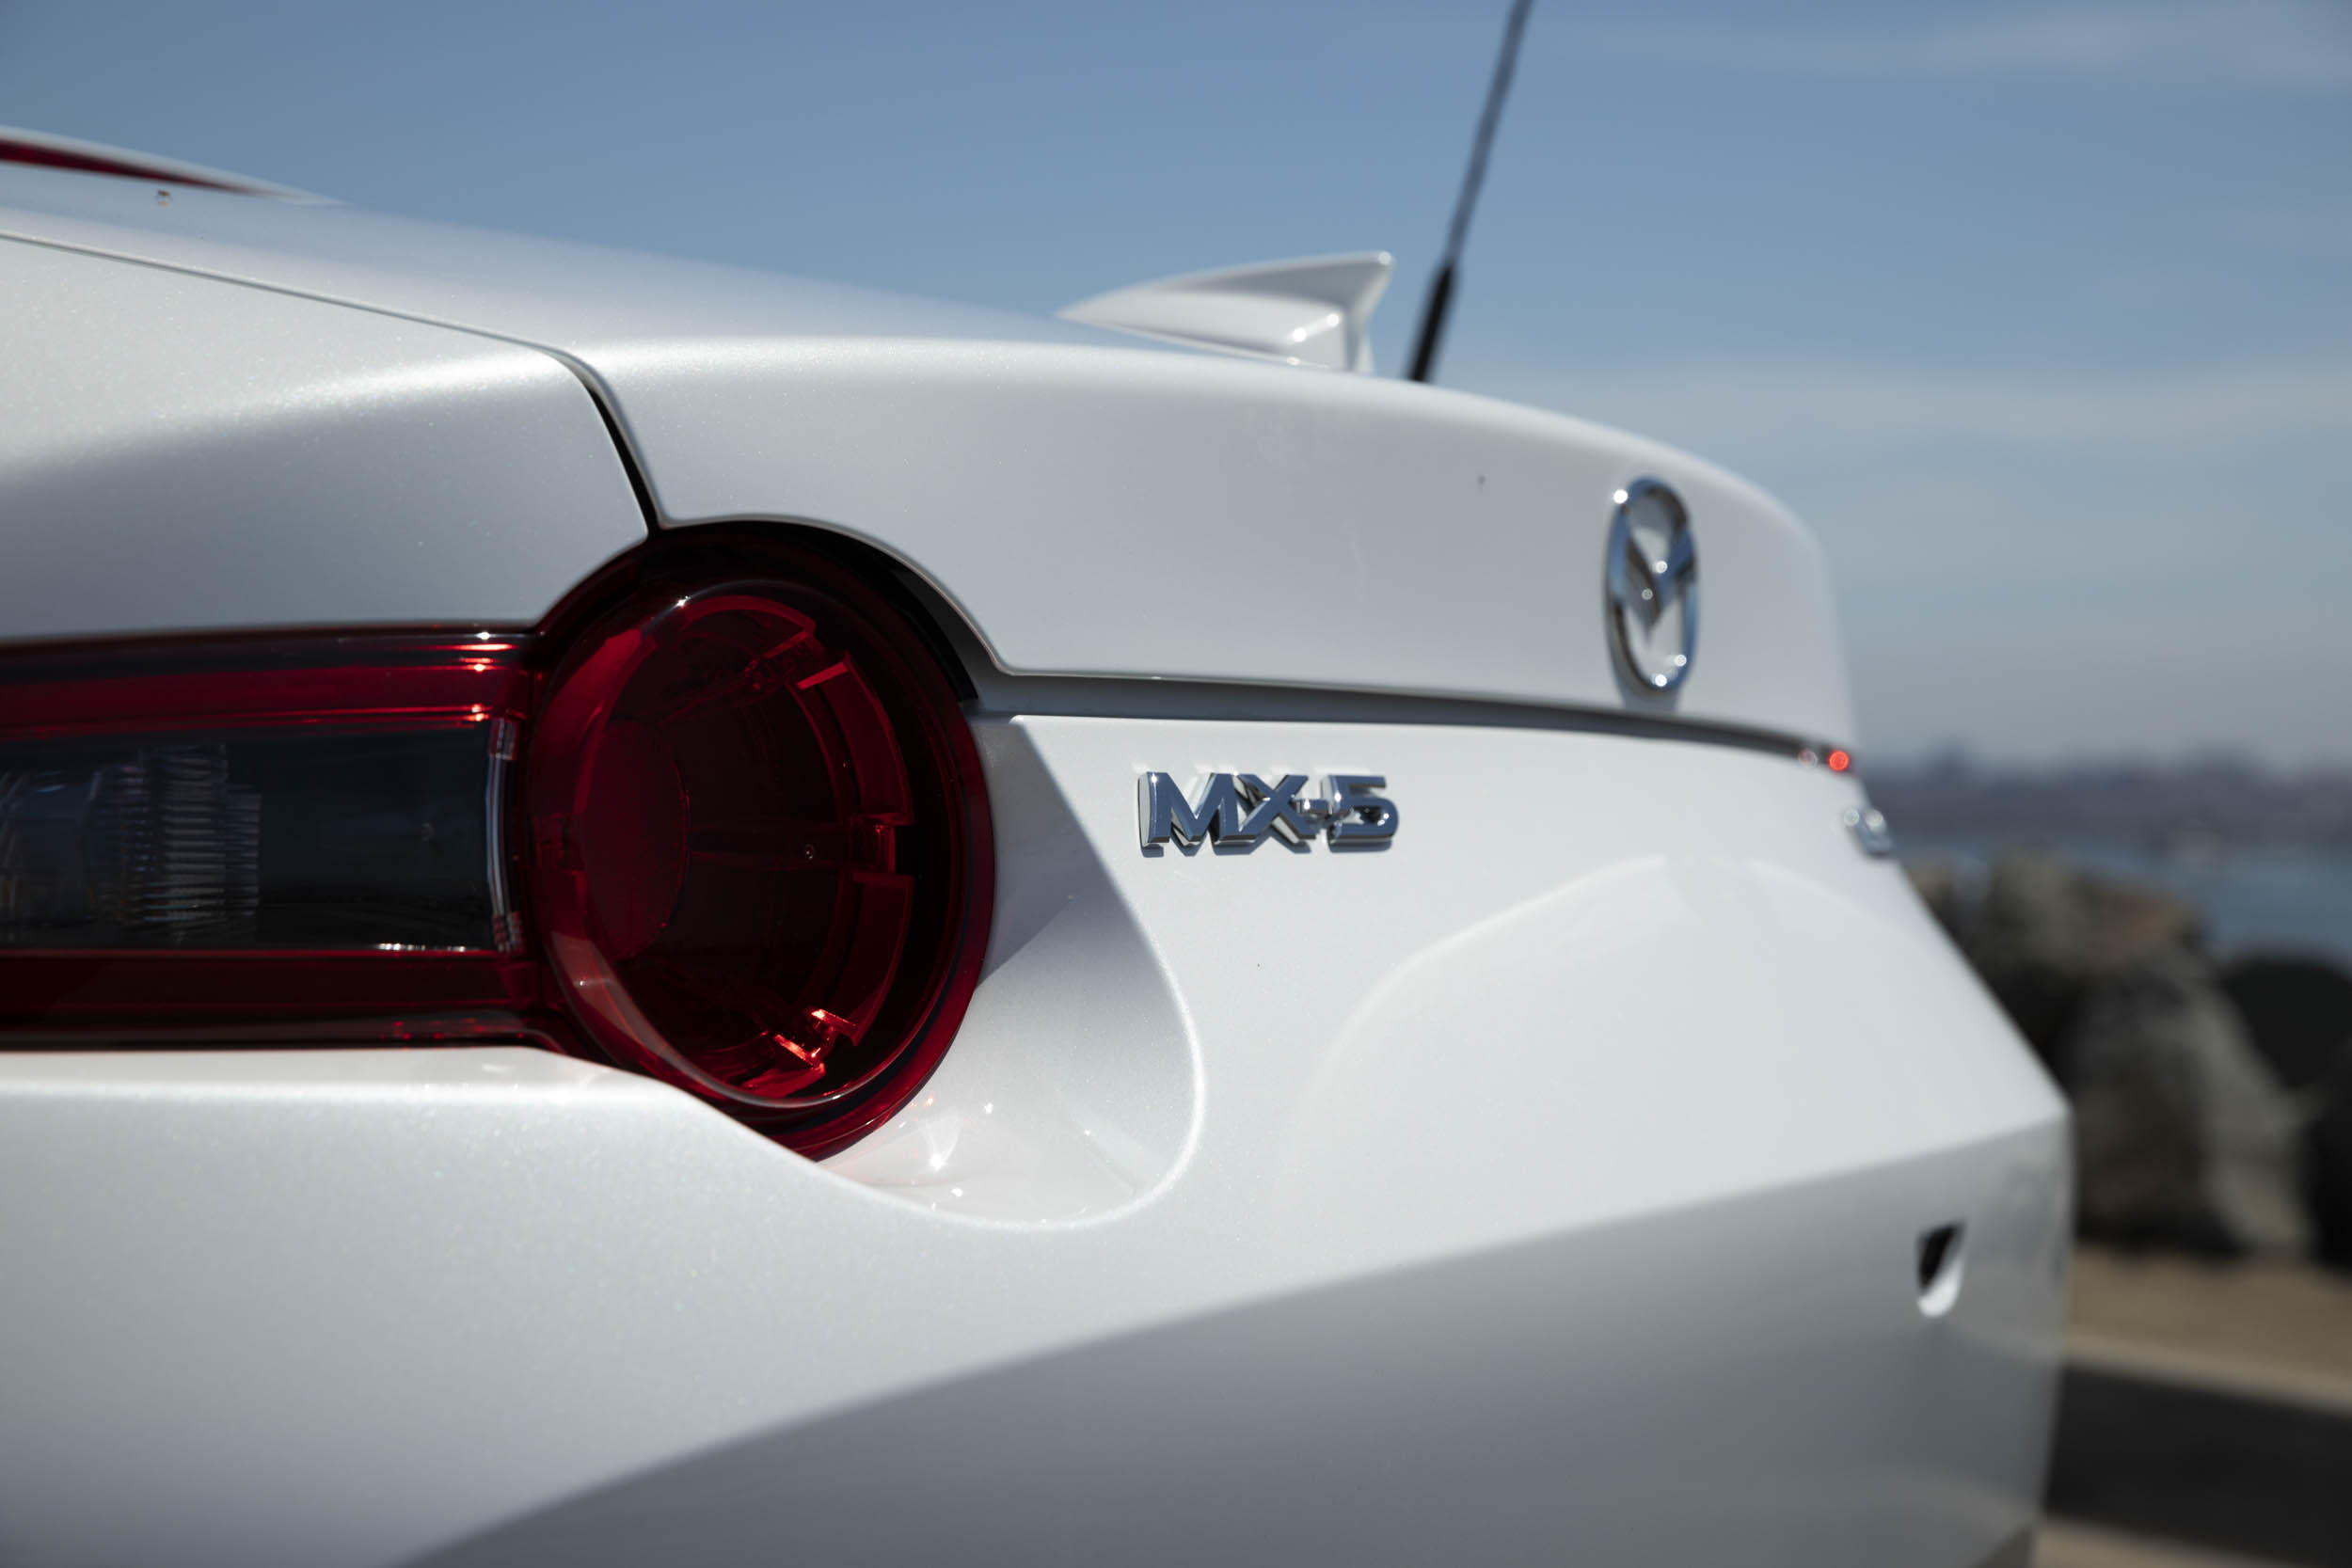 MX-5 badge